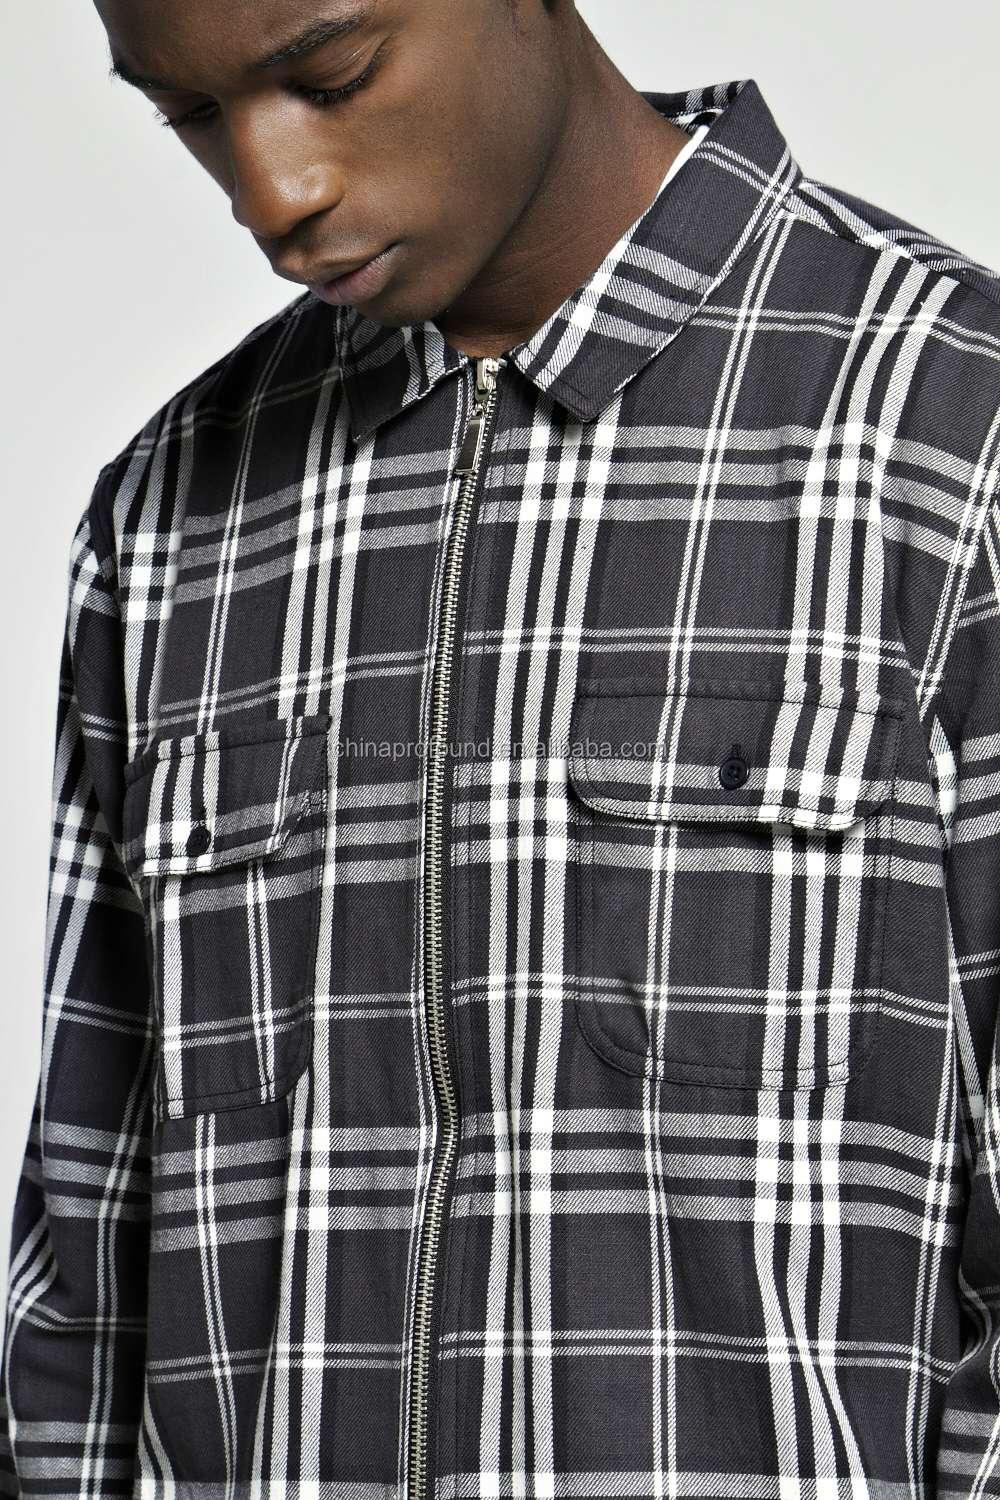 OEM custom long sleeve zipper up black check shirt mens red flannel shirt